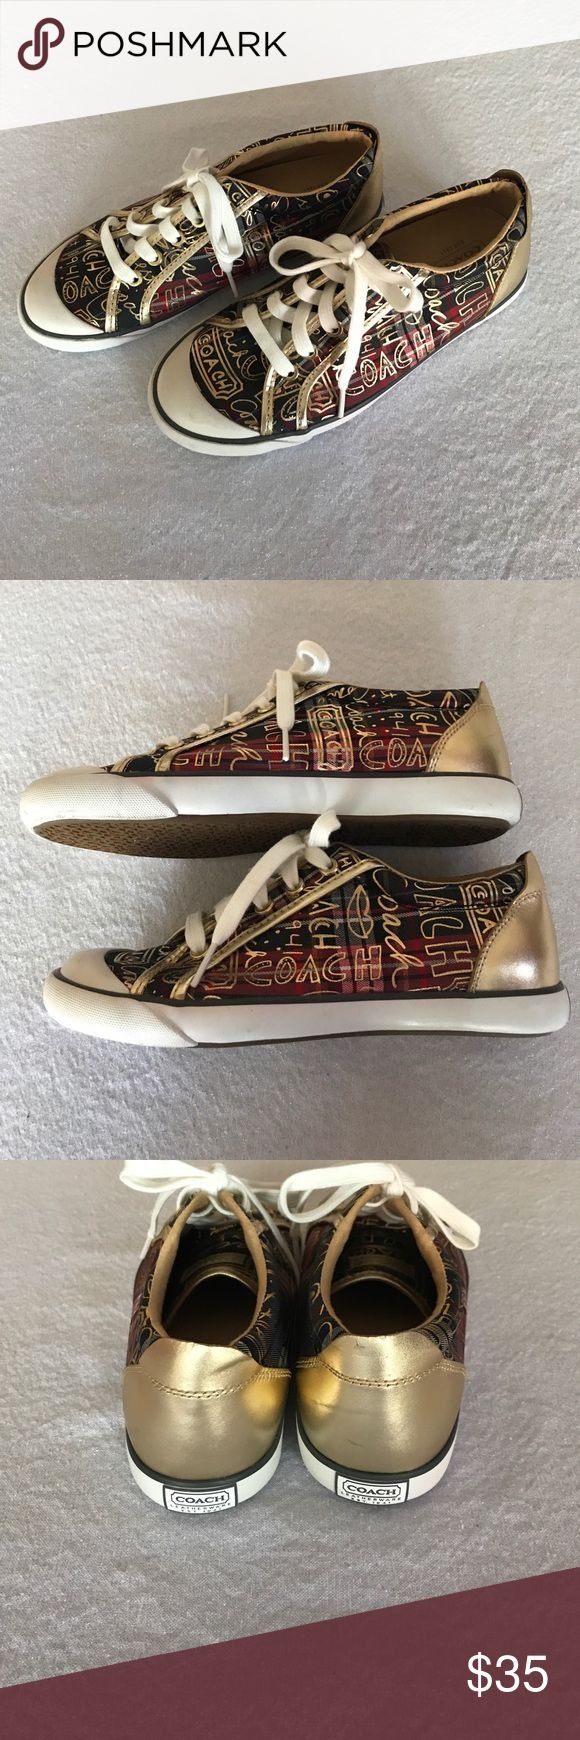 Coach Tennis Shoes Gold, red and green Coach Tennis Shoes. There are a few scuff marks but over all excellent condition. Coach Shoes Sneakers